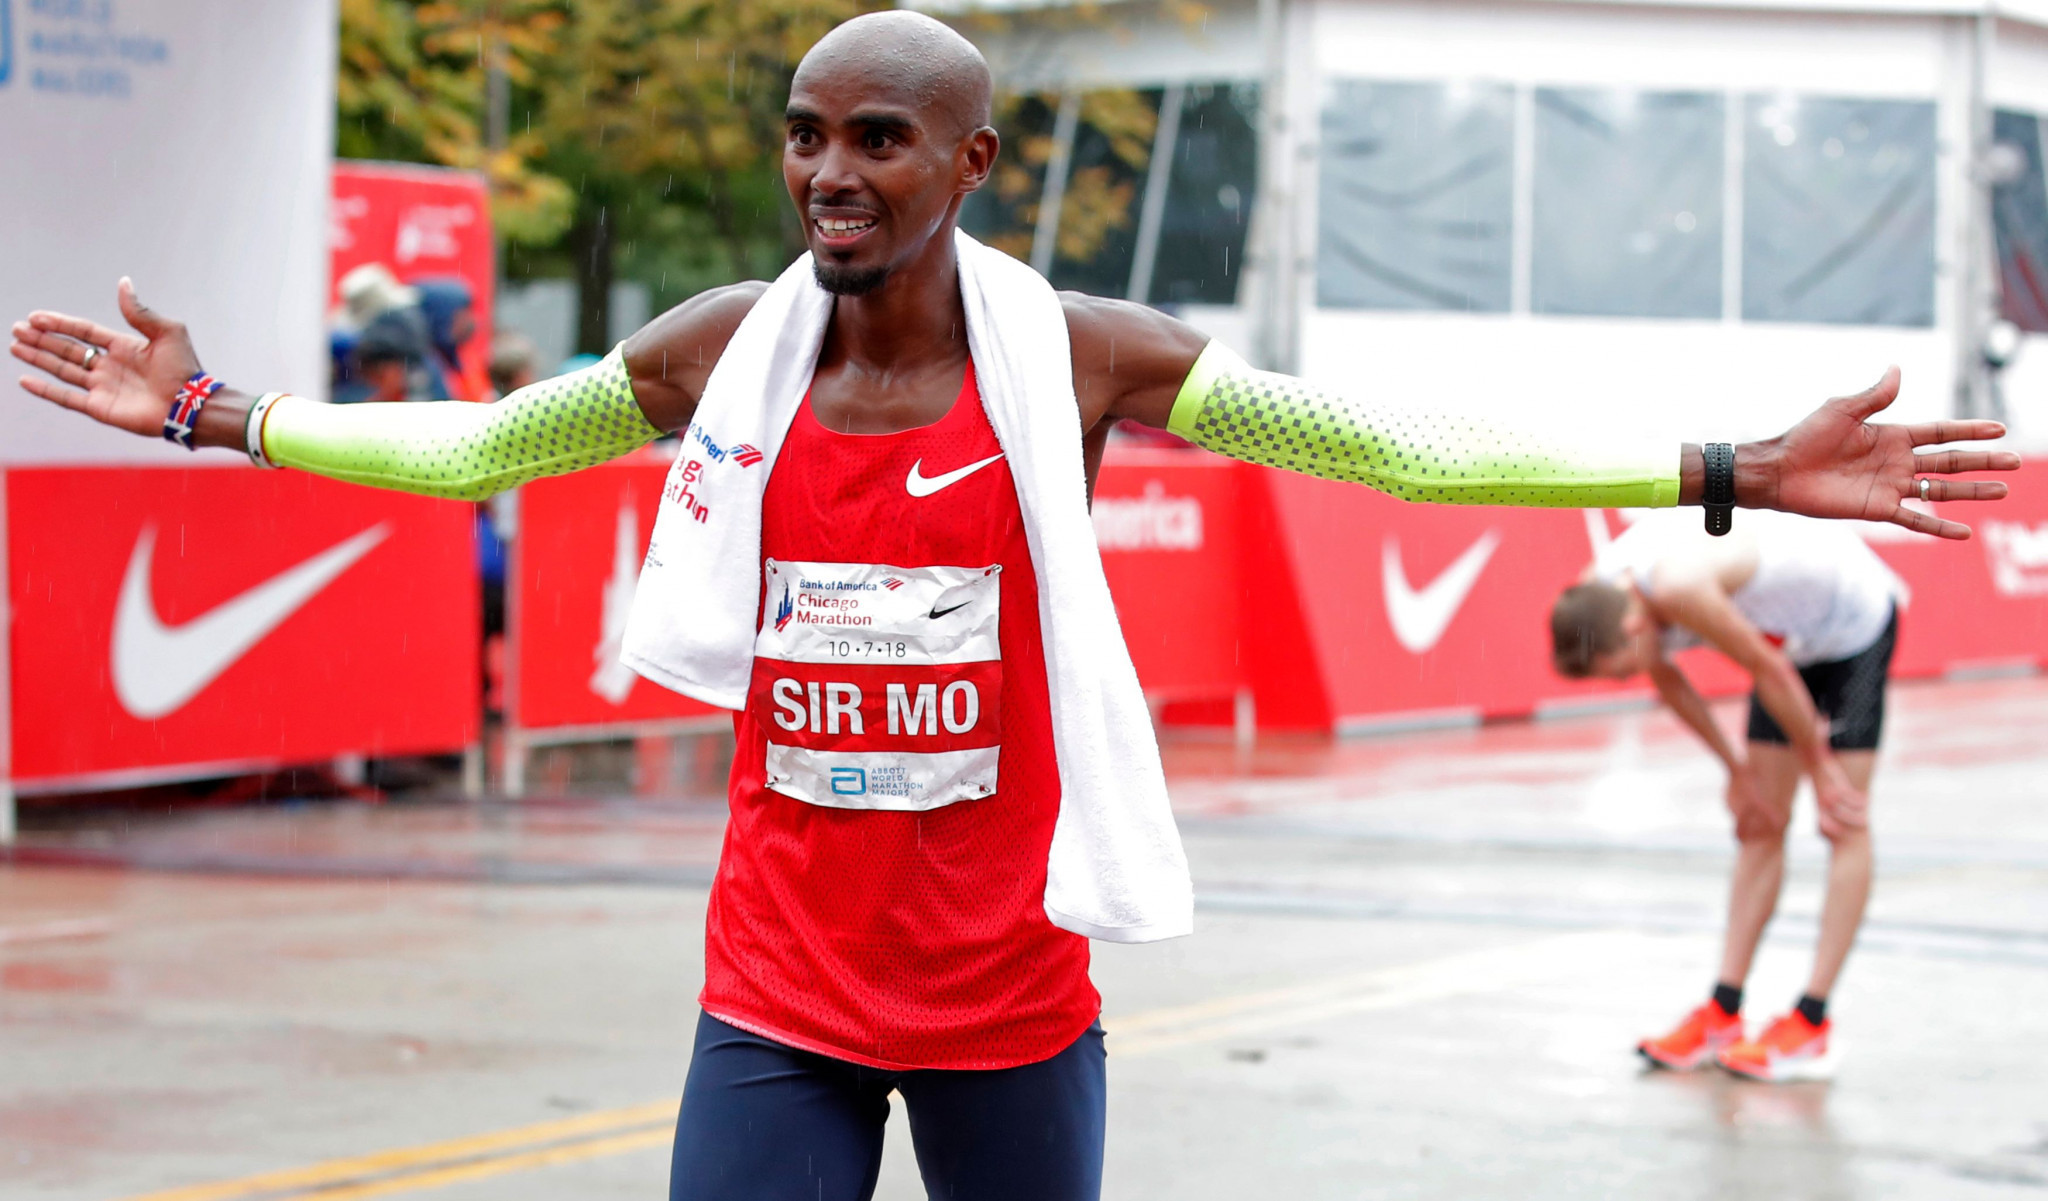 Mo Farah will hope to earn a maiden London Marathon title ©Getty Images